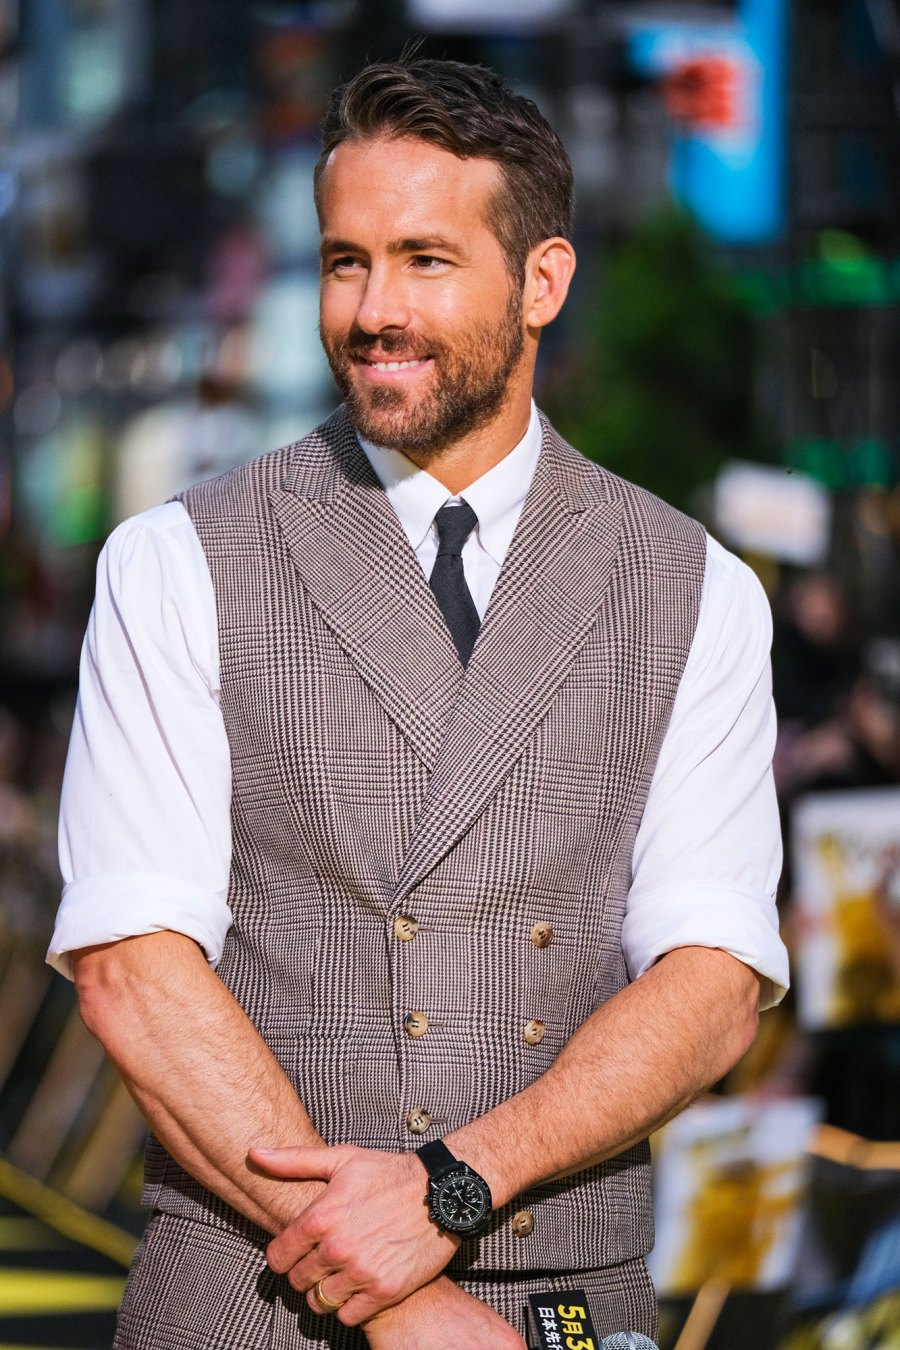 Ryan Reynolds and Blake Lively's Quotes About Their Daughters